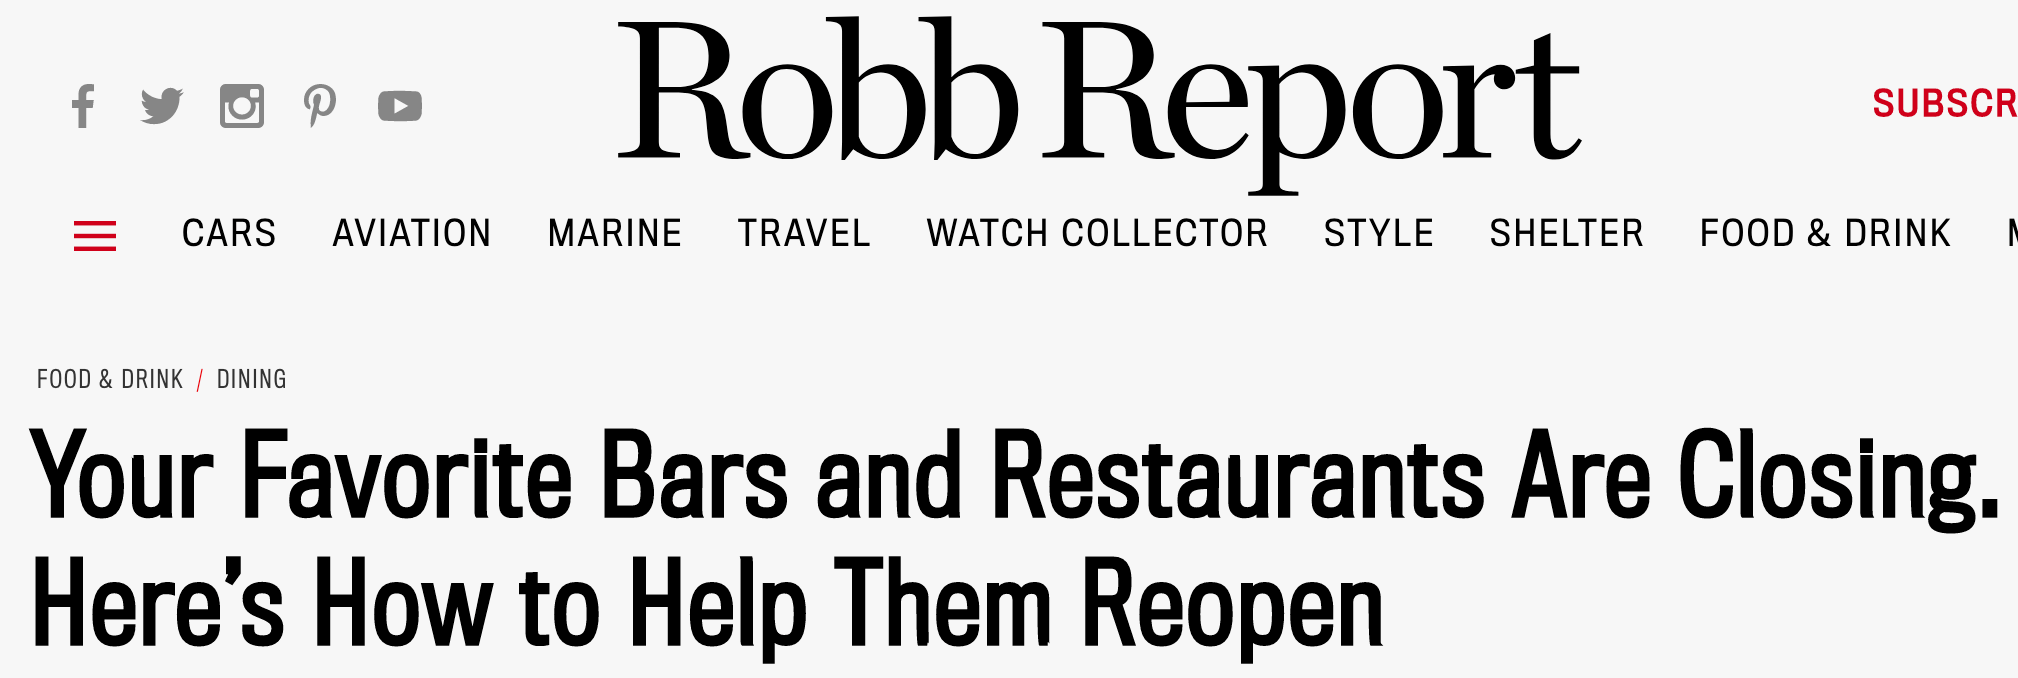 Robb Report article - eReleases press release service Dining Bond Case Study